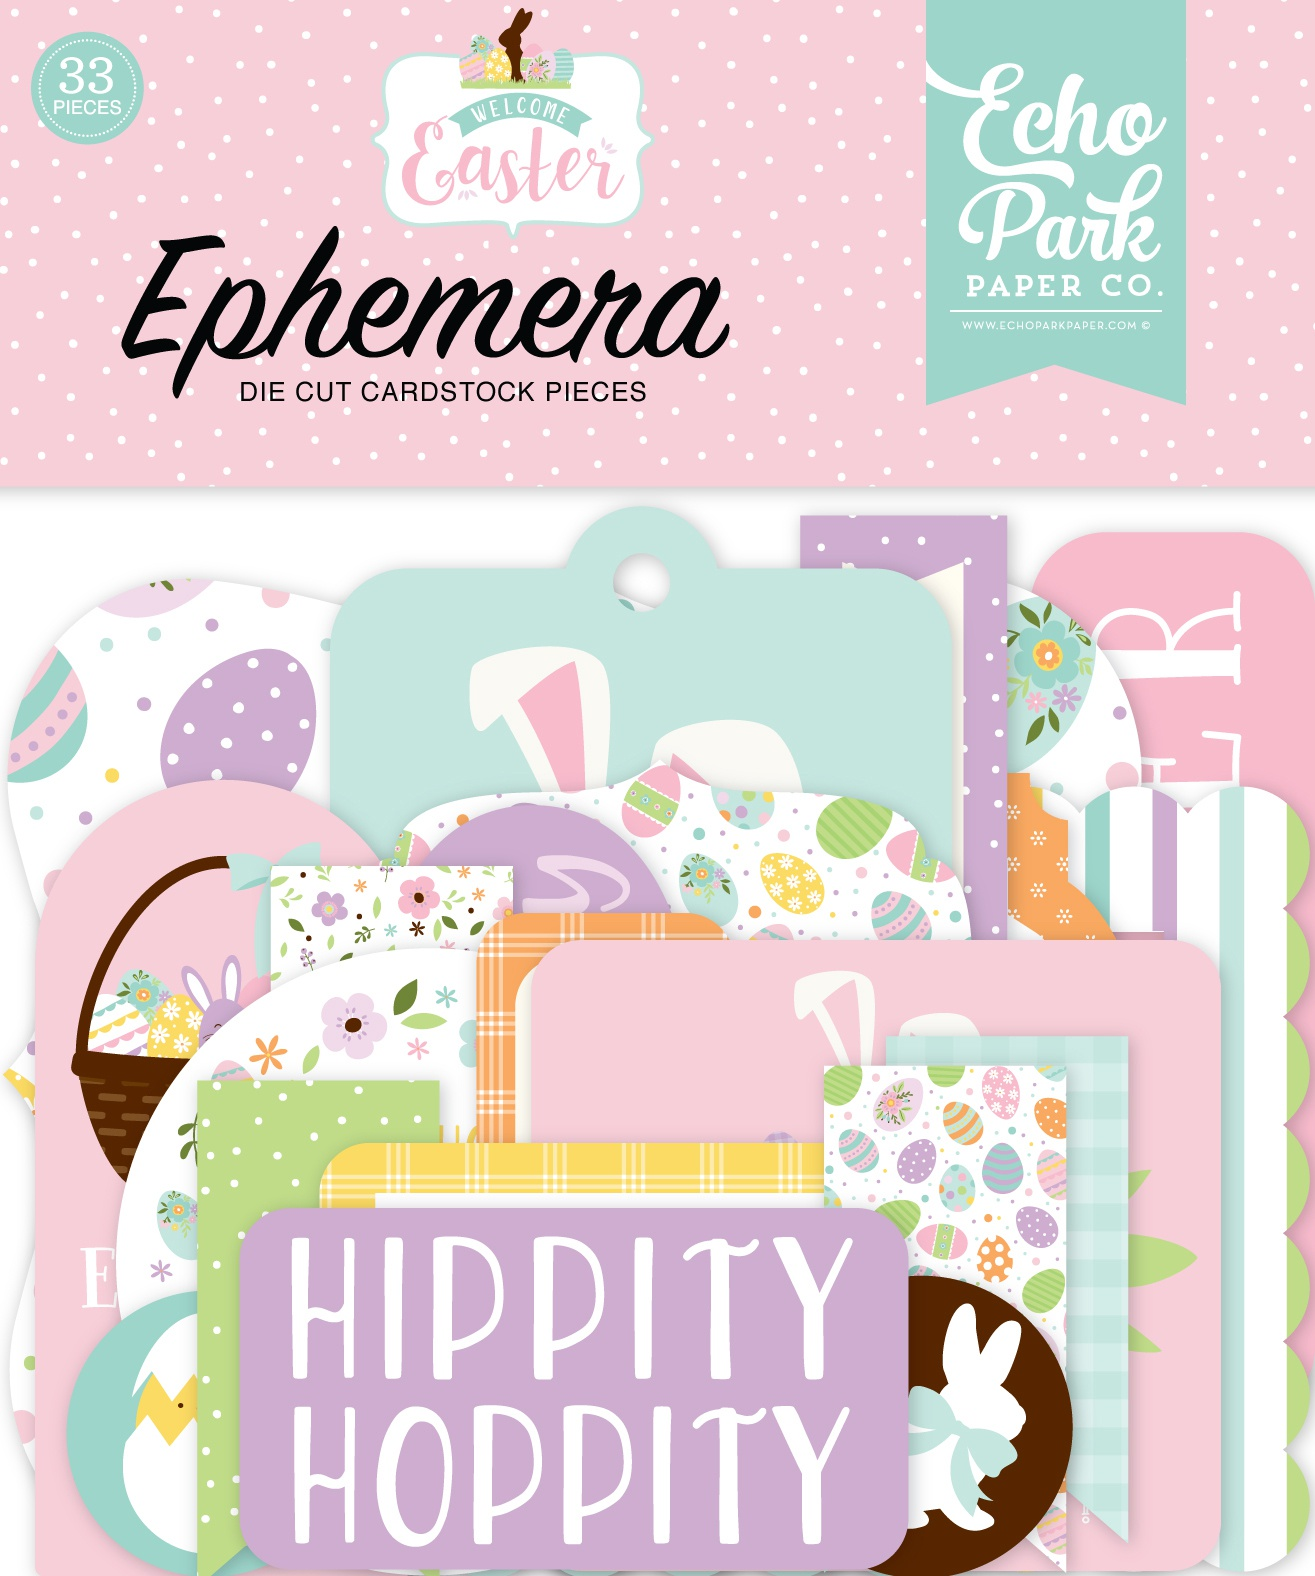 Echo Park Cardstock Ephemera 33/Pkg-Icons, Welcome Easter